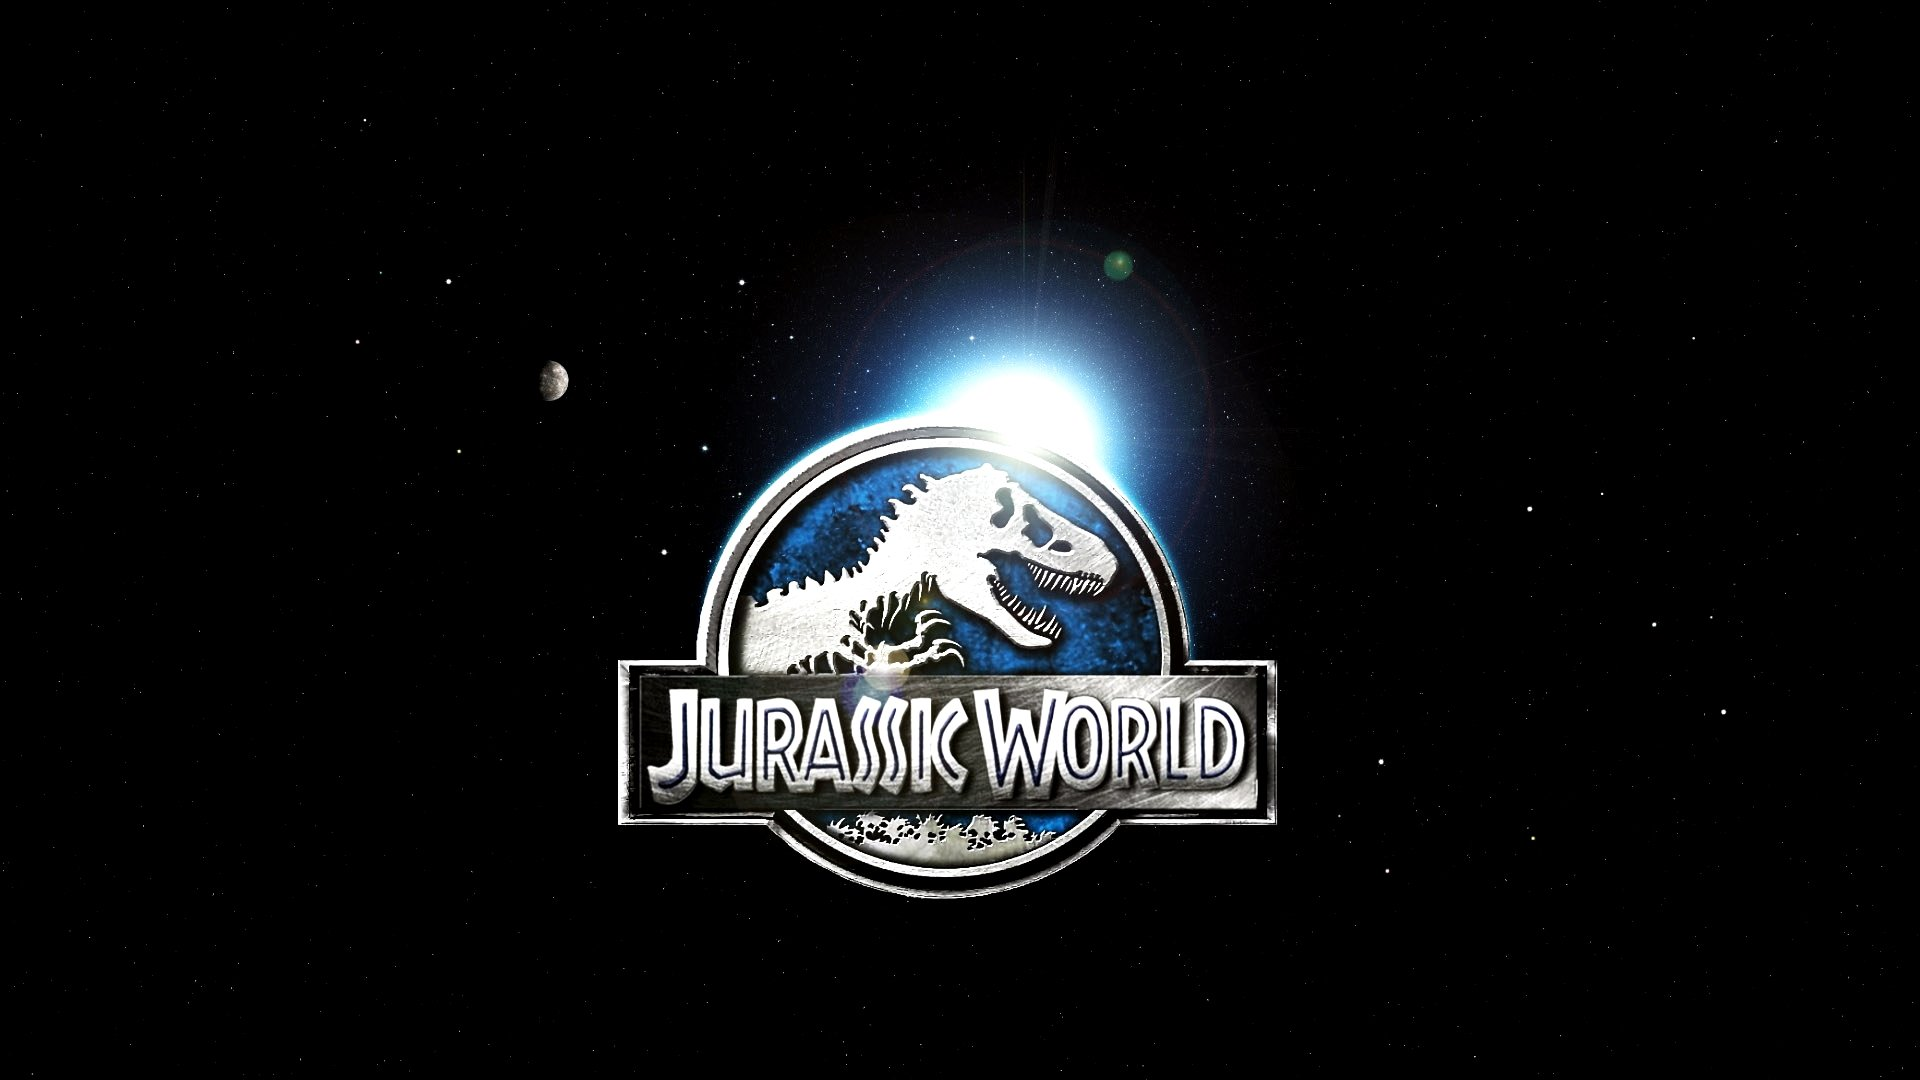 Jurassic World wallpaper 3